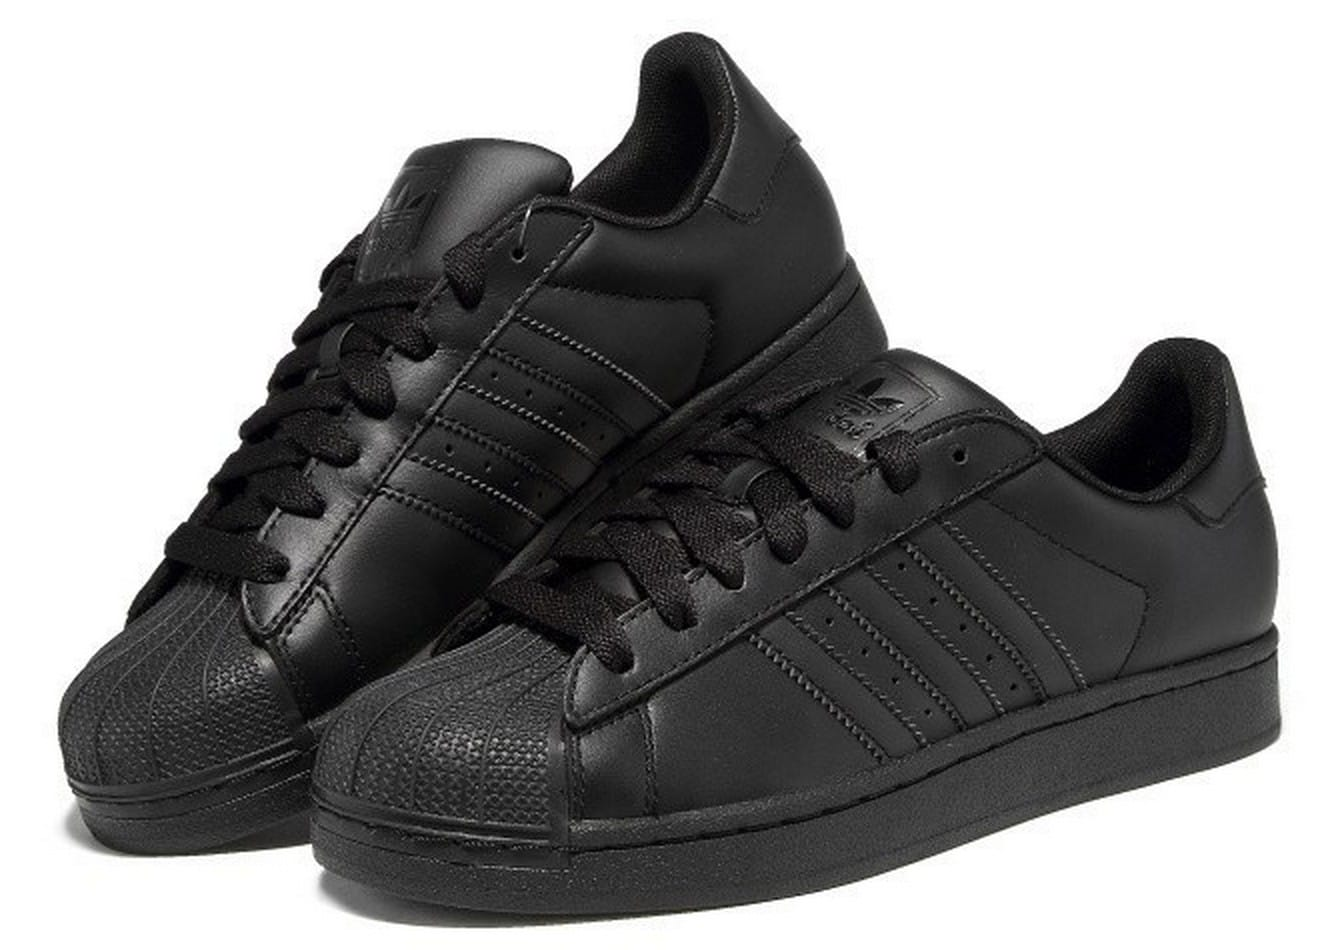 adidas superstar negras enteras